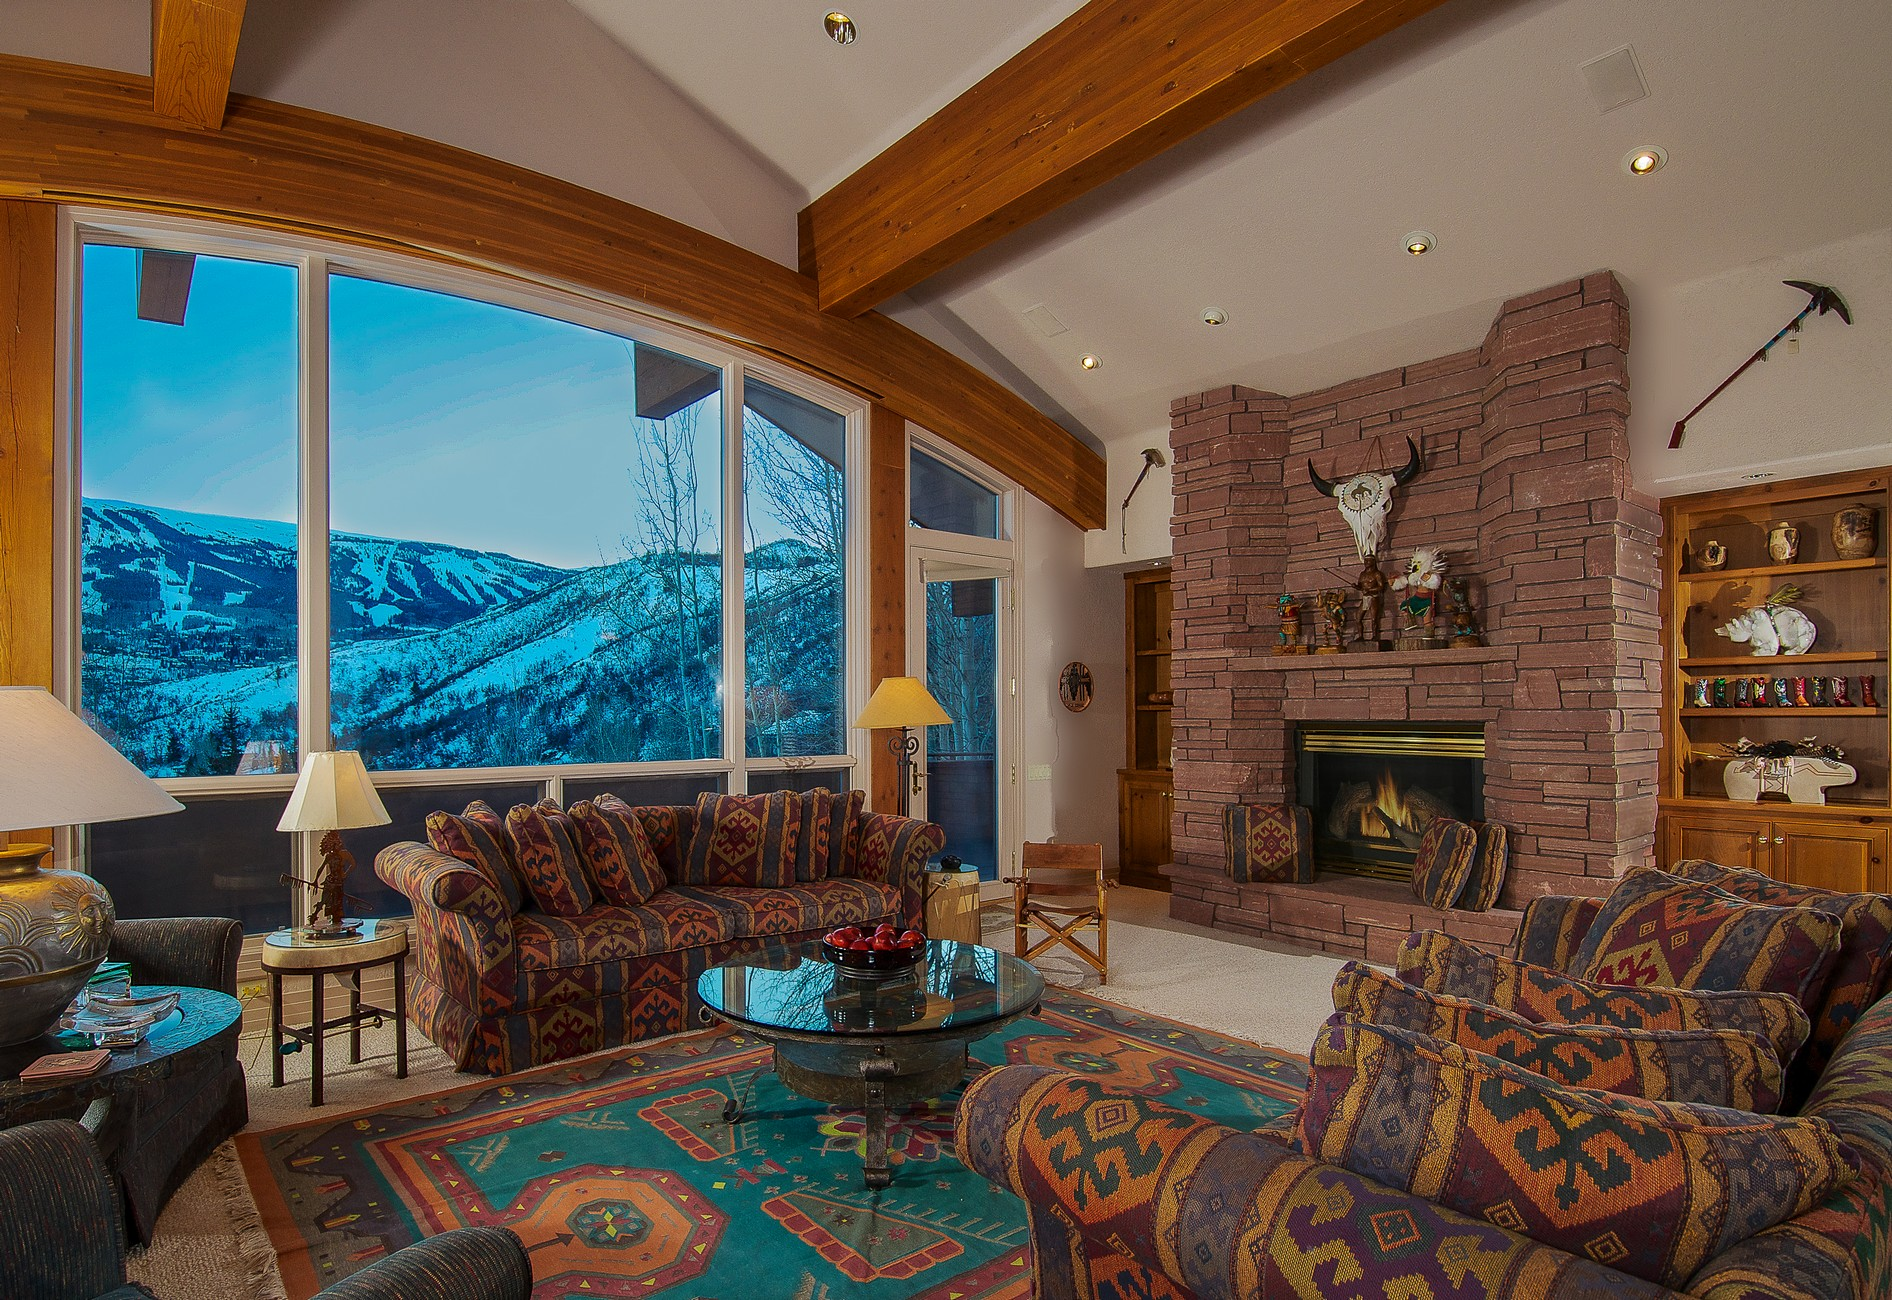 Single Family Home for Sale at Melton Ranch 500 Sinclair Road Lot 12 Snowmass Village, Colorado 81615 United States